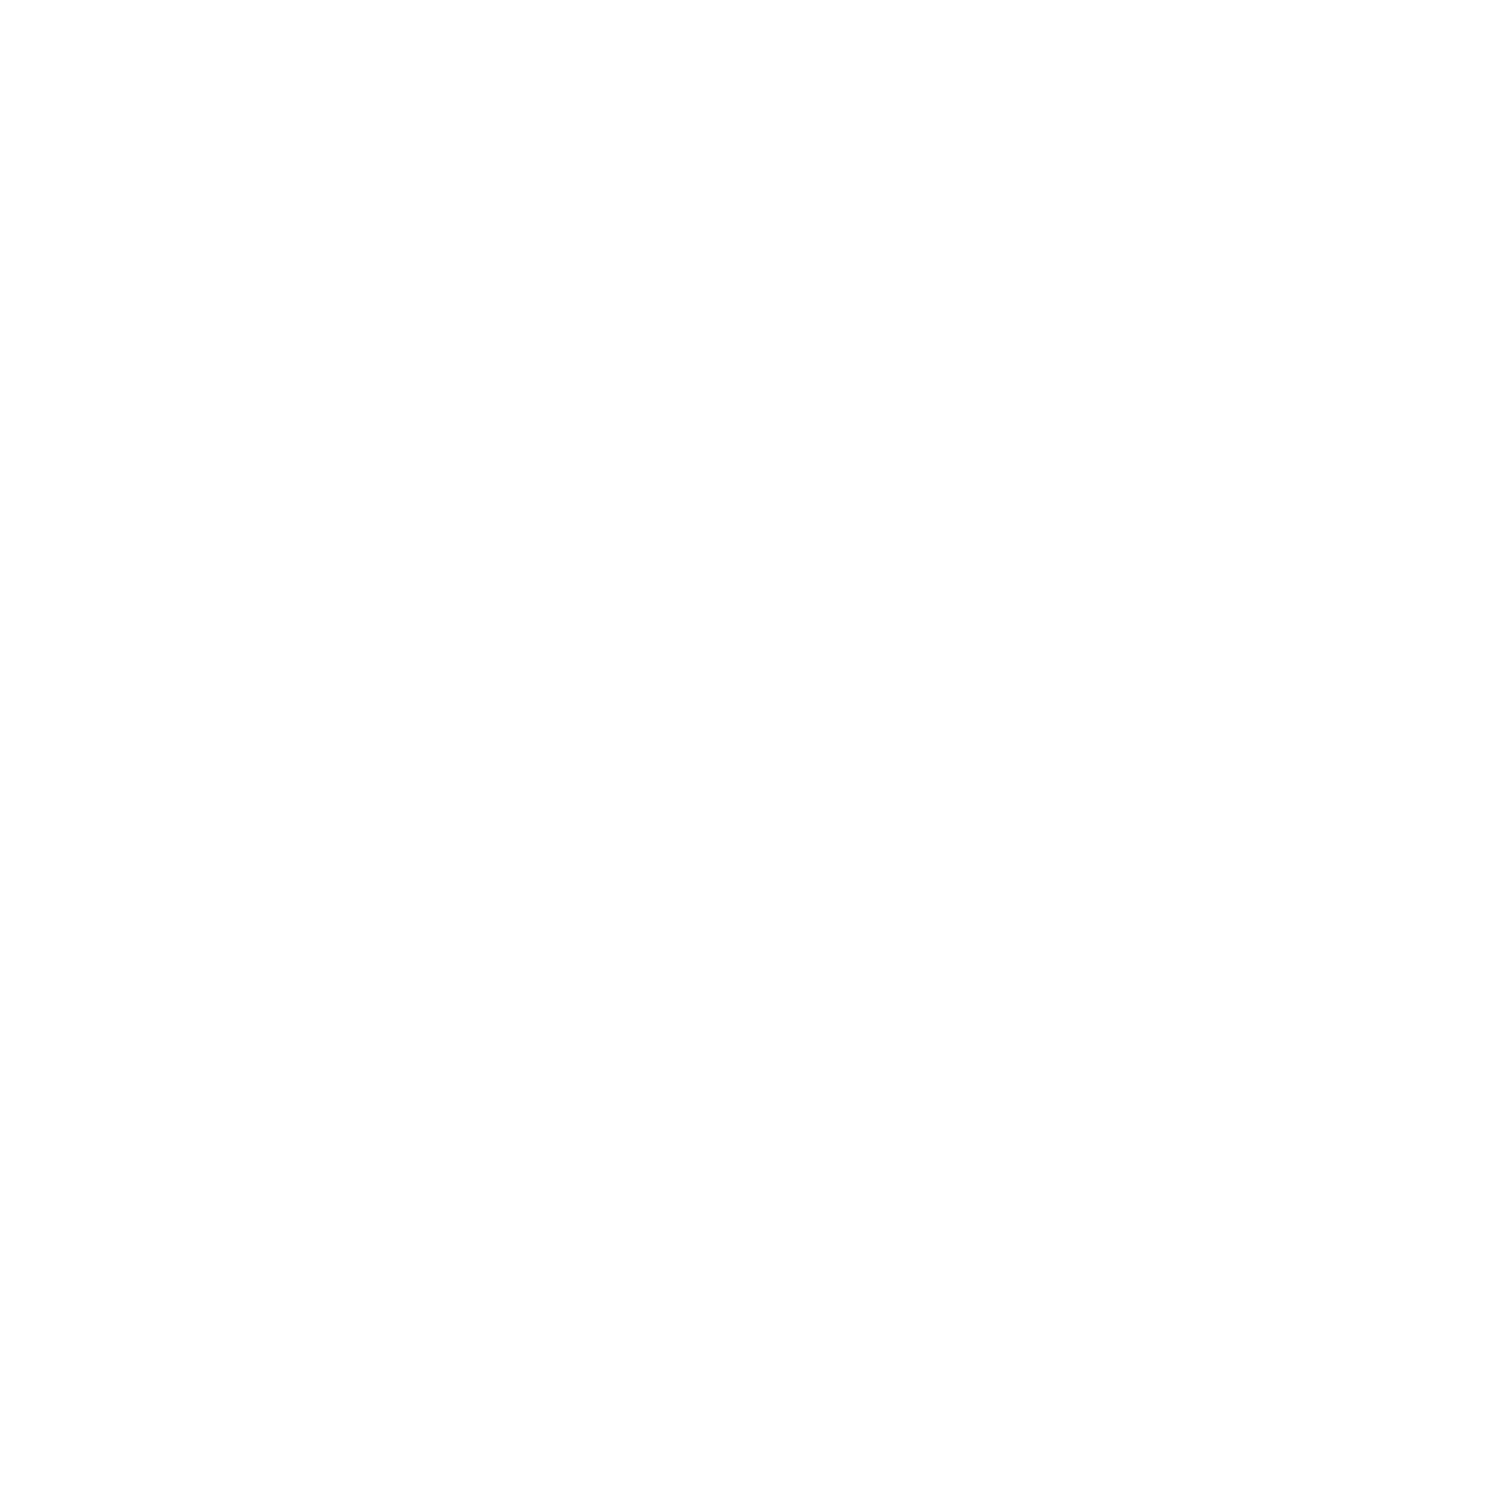 Promote Classical